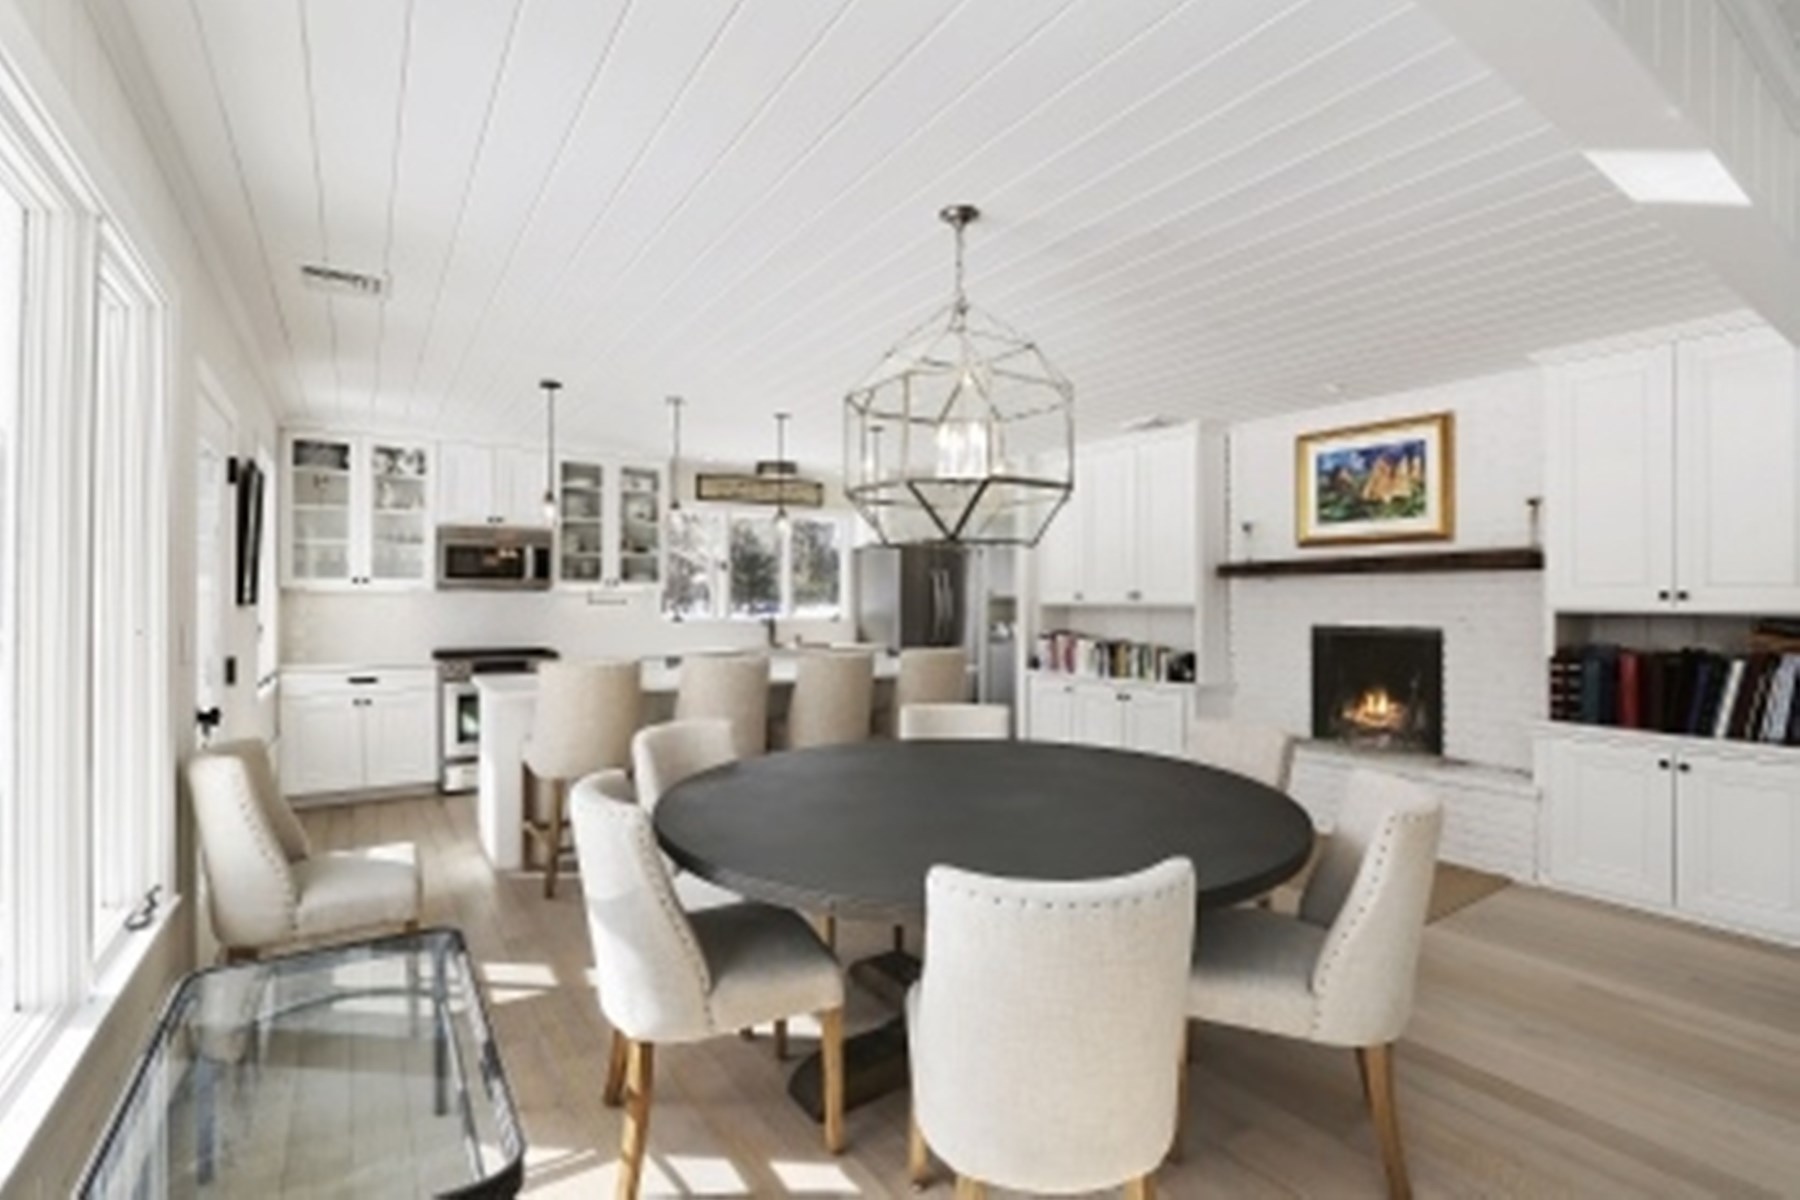 Single Family Home for Rent at East Hampton Georgica Gem East Hampton, New York 11937 United States